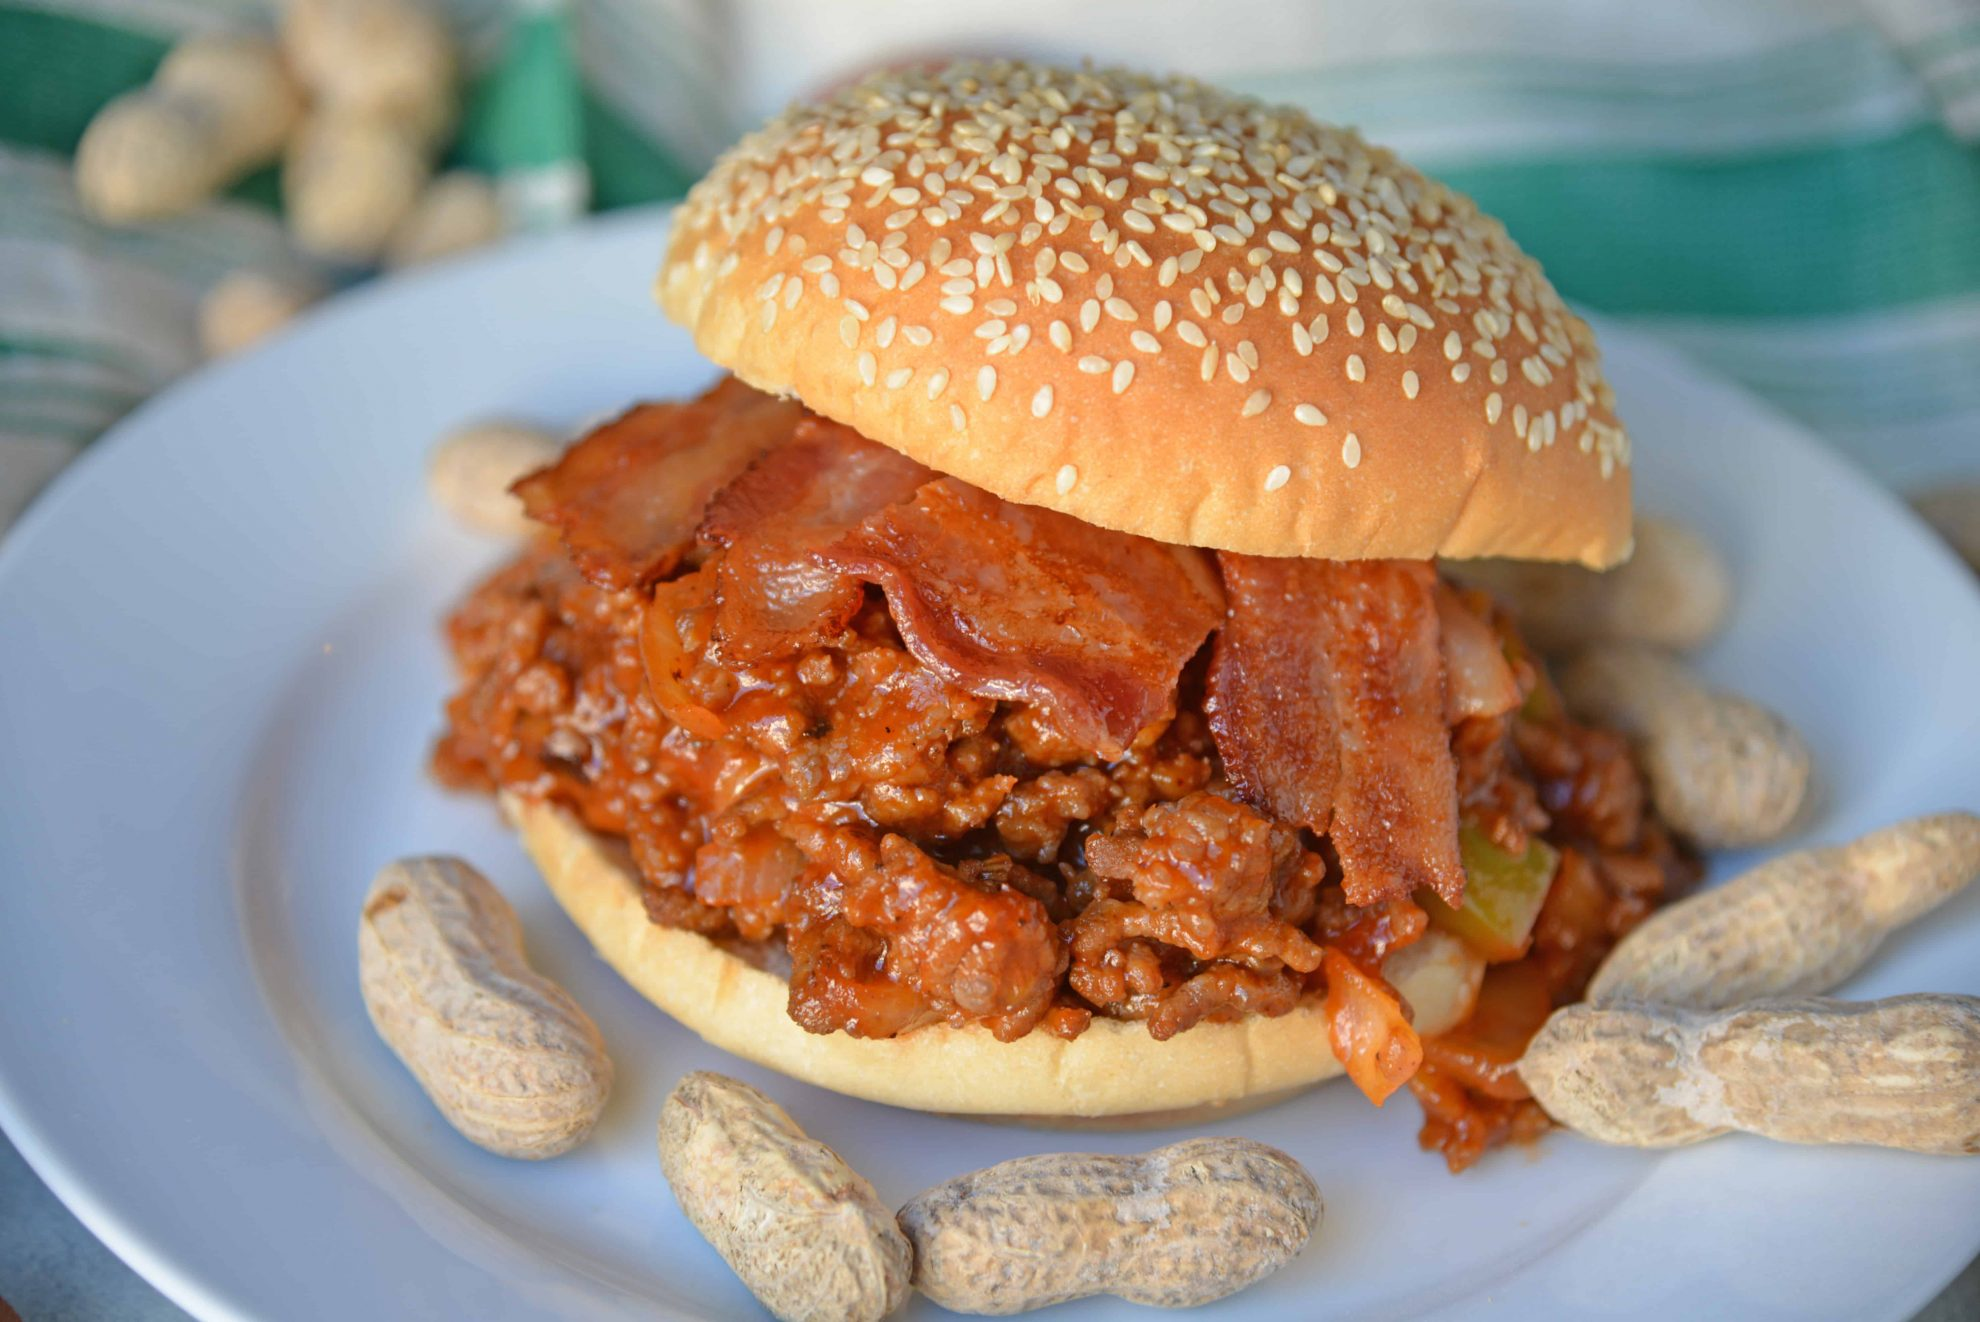 Homemade Sloppy Joes are so easy to make! Use my special sweet heat sloppy Joe sauce recipe with ground pork, beef, chicken or even turkey! #homemadesloppyjoes #sloppyjoesauce #sloppyjoerecipe www.savoryexperiments.com